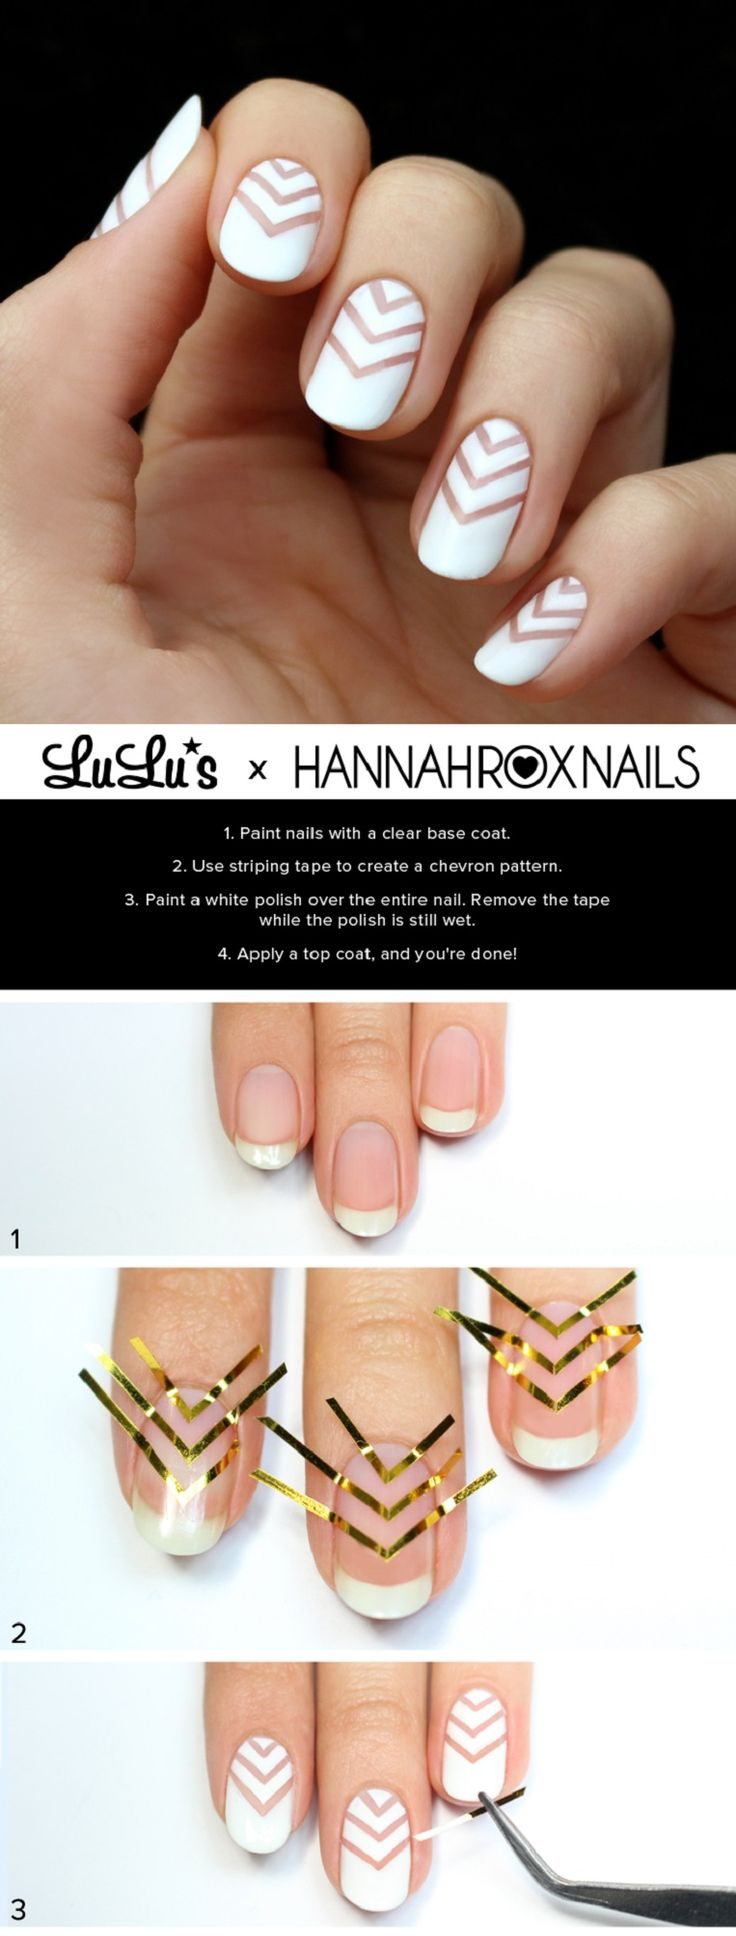 Best 25 easy nail art ideas on pinterest easy nail designs best 25 easy nail art ideas on pinterest easy nail designs nail tutorials and easy nails prinsesfo Choice Image